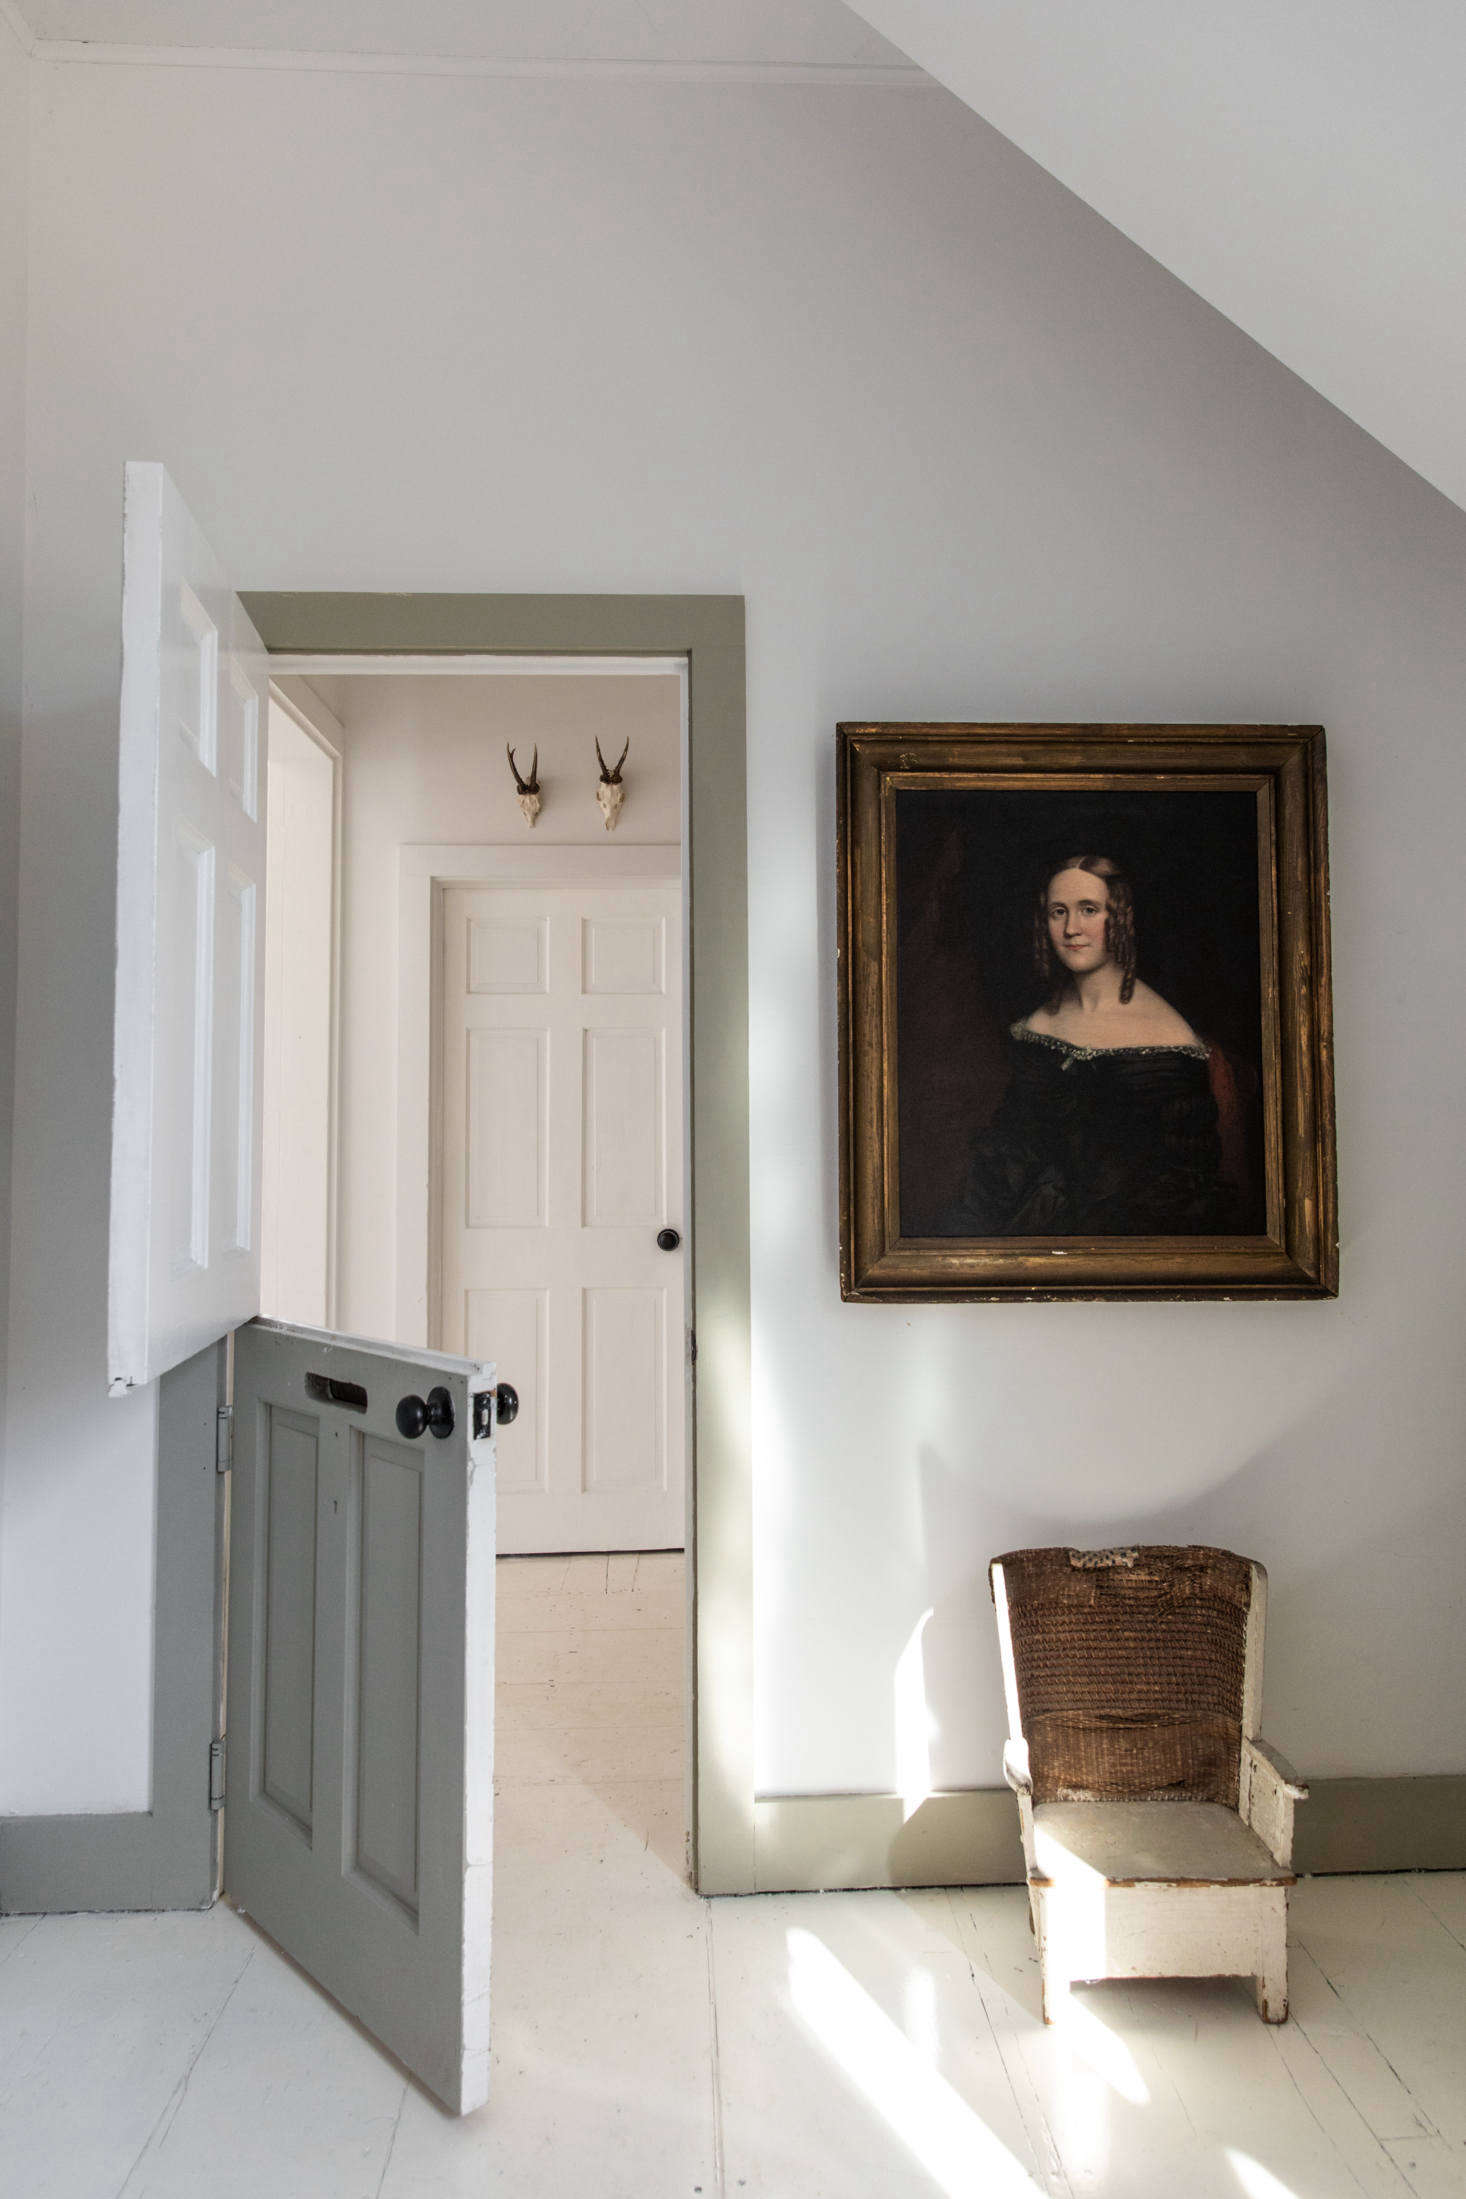 Just off of the entryway, a Dutch door leads to a small bedroom, the first of four.